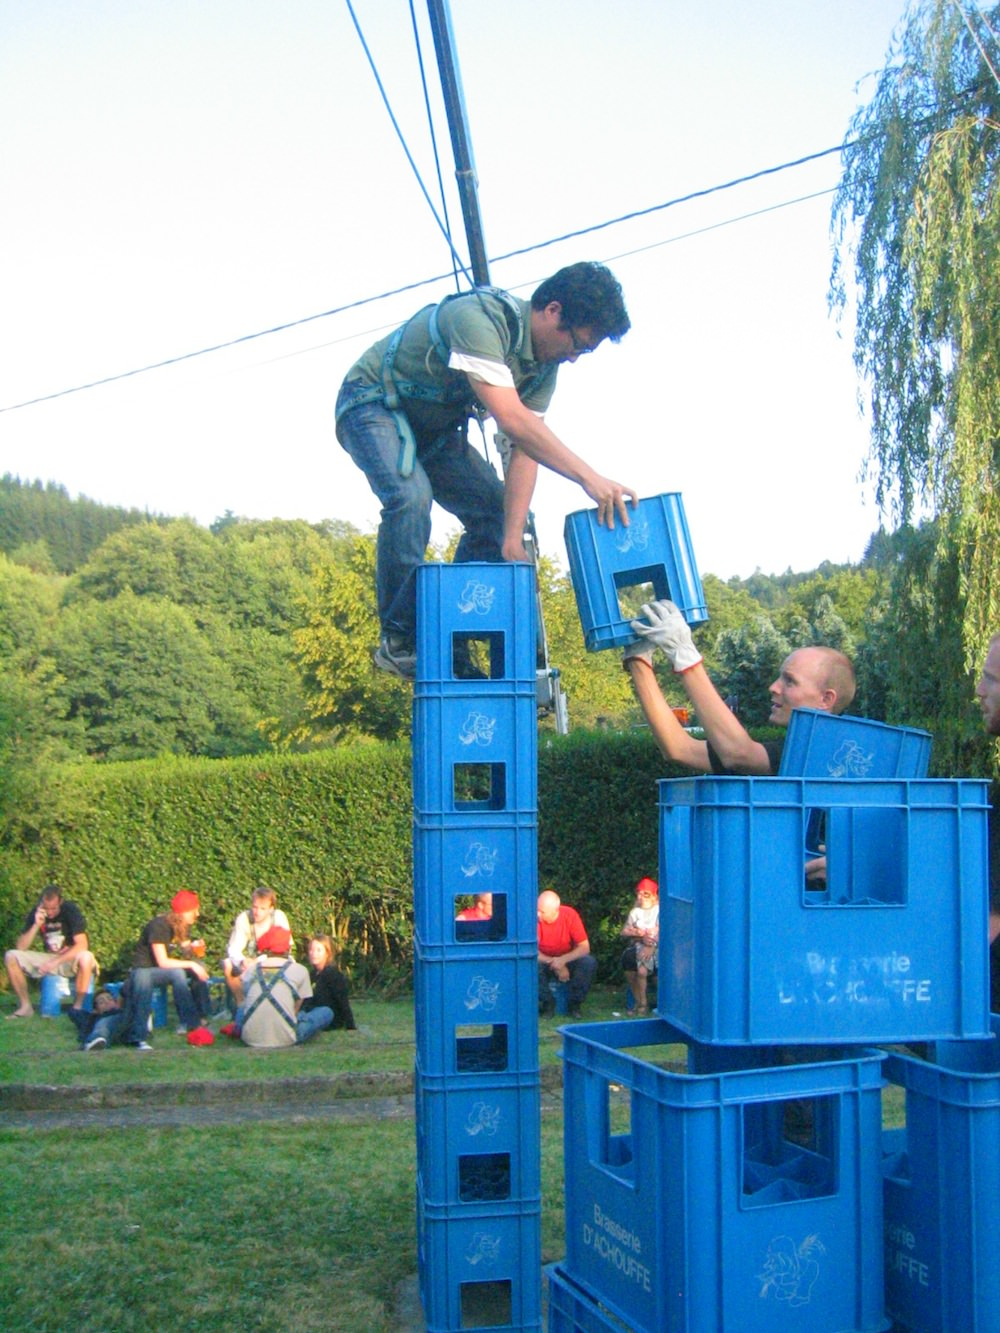 American, Jim Cheng demonstrates remarkable balance in the beer crate stacking competition - Photo courtesy Chris Bauweraerts